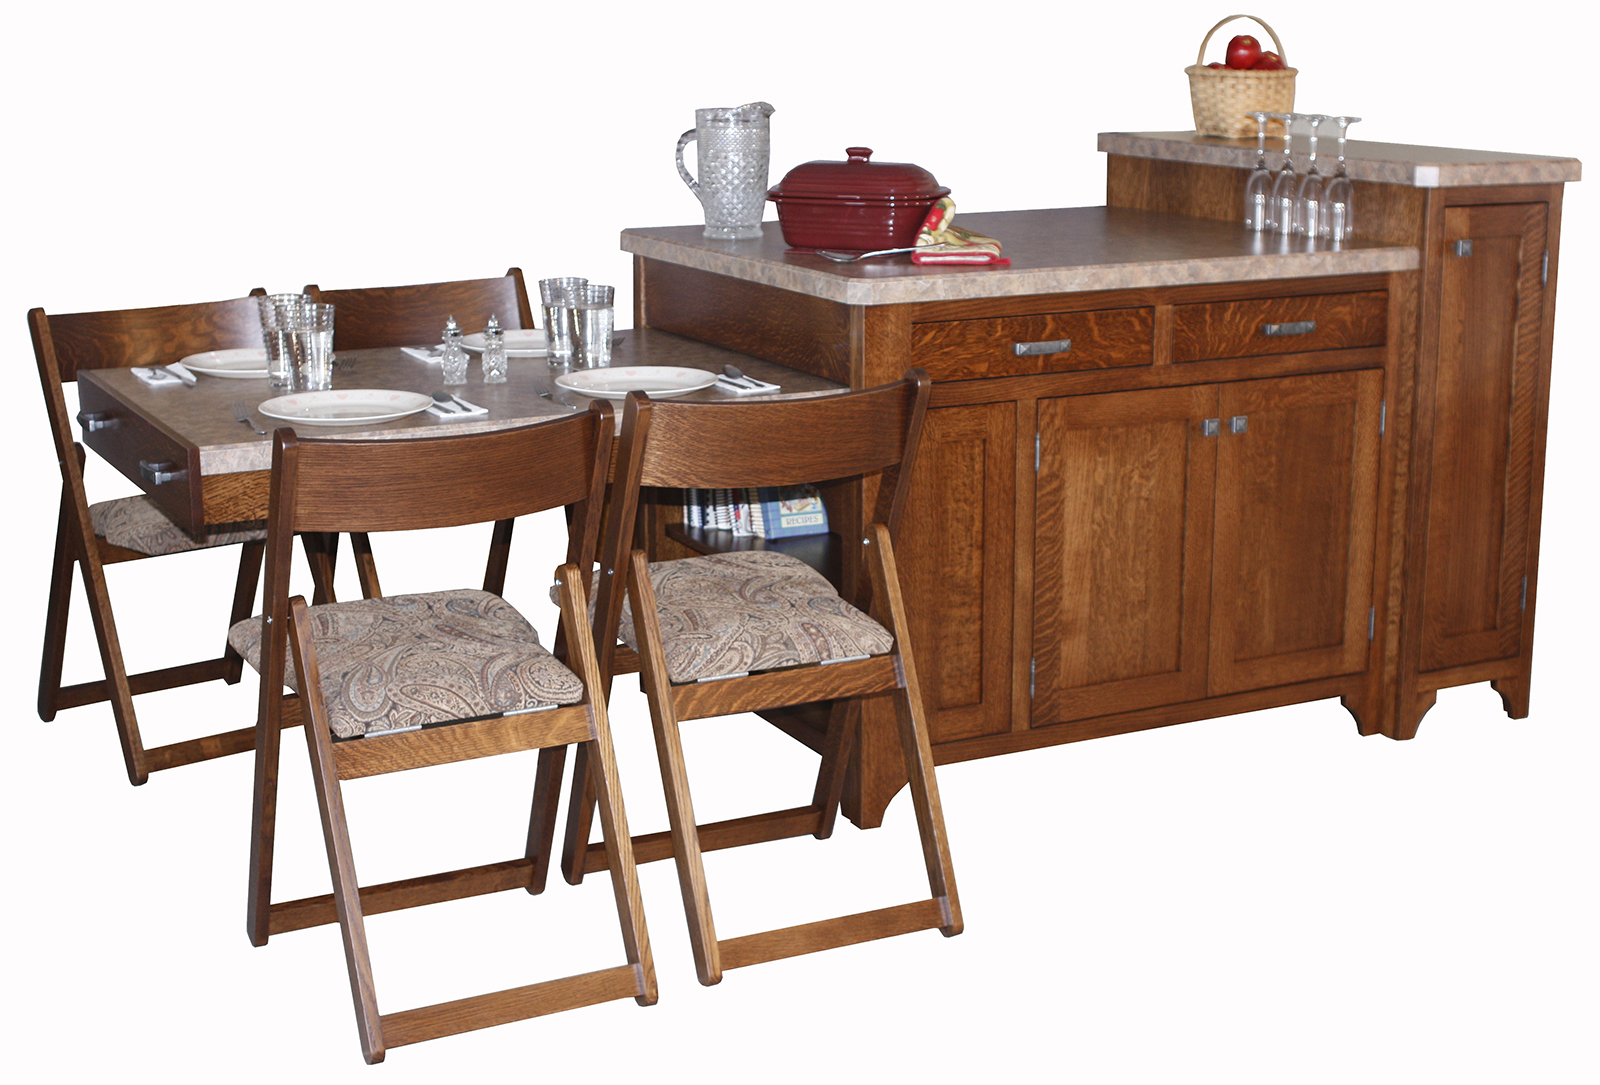 High Chair Converts To Table And Chair Space Saver Kitchen Island - Amish Direct Furniture